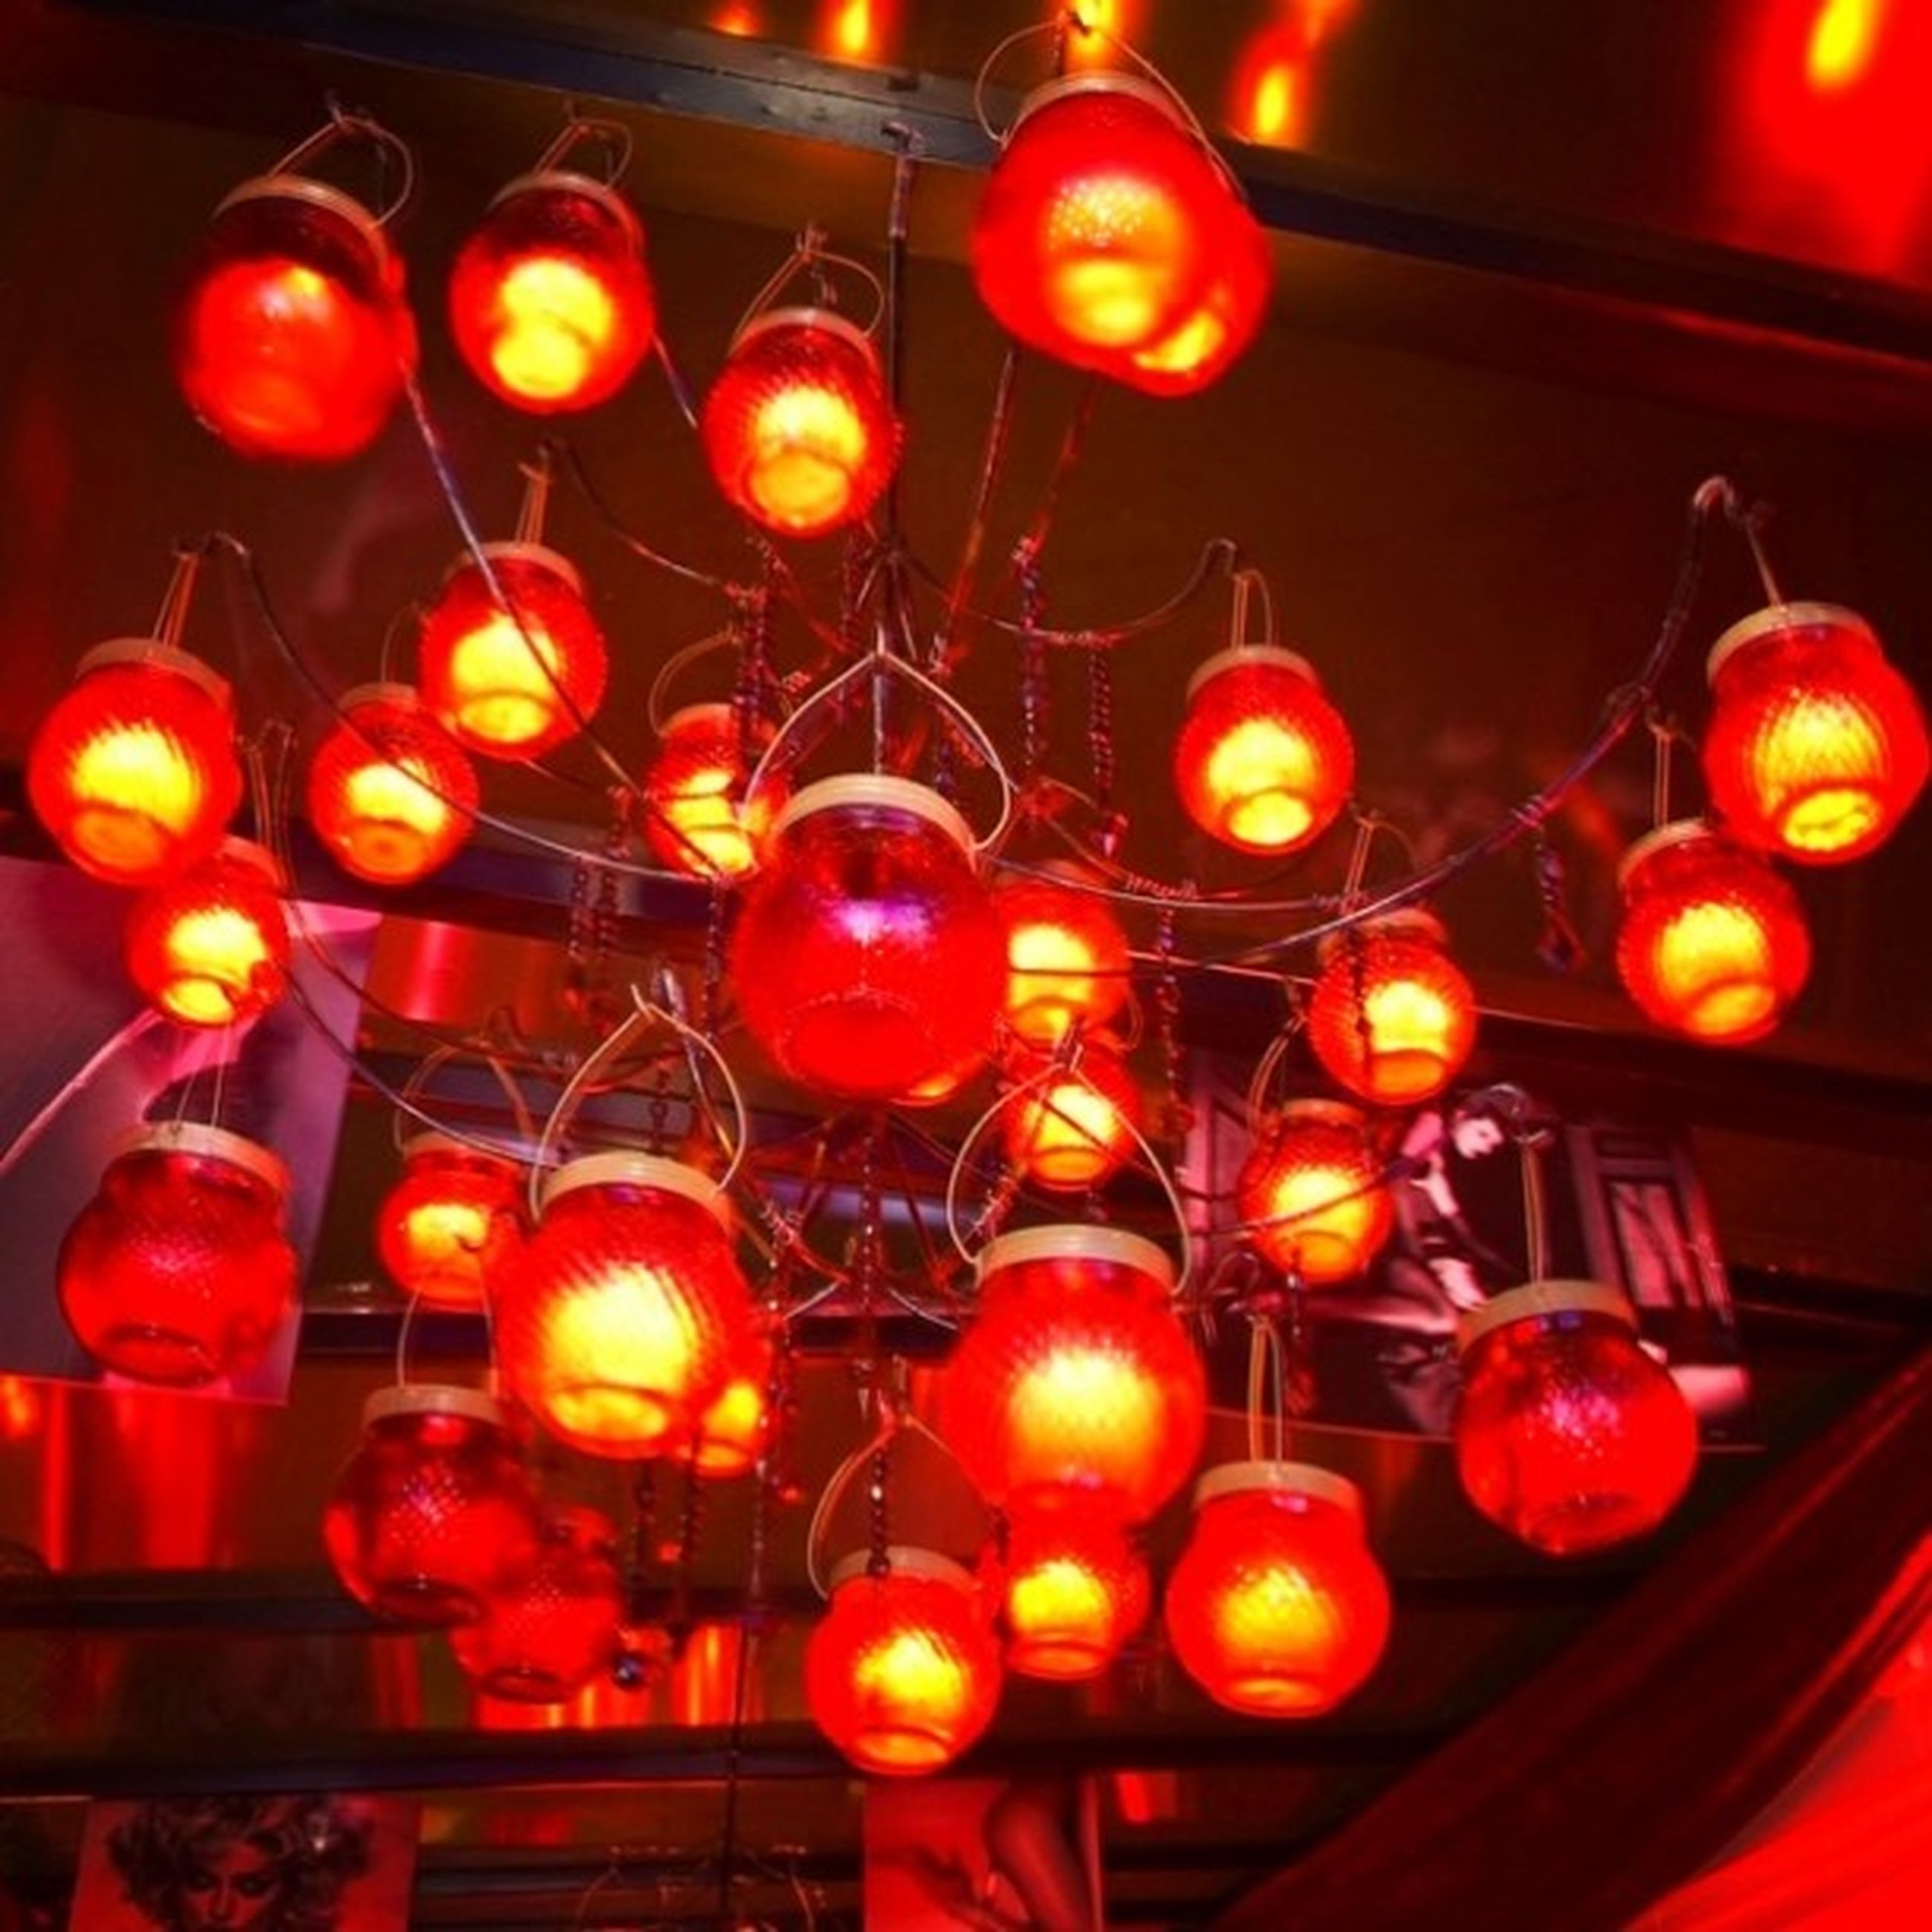 illuminated, lighting equipment, indoors, hanging, red, lantern, decoration, low angle view, electricity, in a row, night, electric light, chinese lantern, large group of objects, no people, light bulb, electric lamp, close-up, light - natural phenomenon, still life